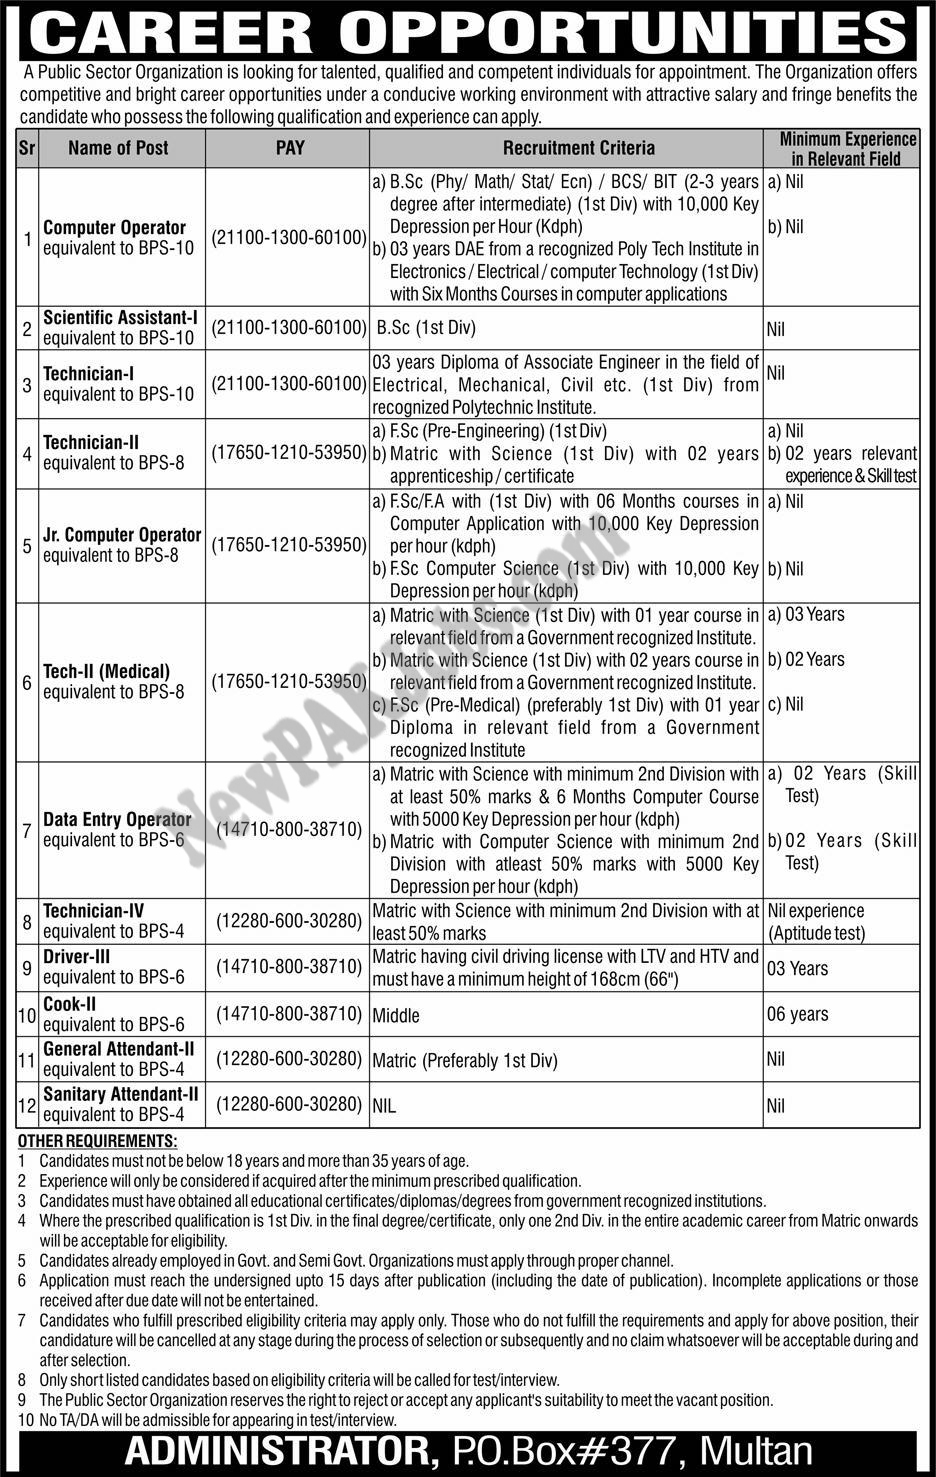 New 2018 Govt Jobs in Public Sector Organization in Multan, Government of the Punjab